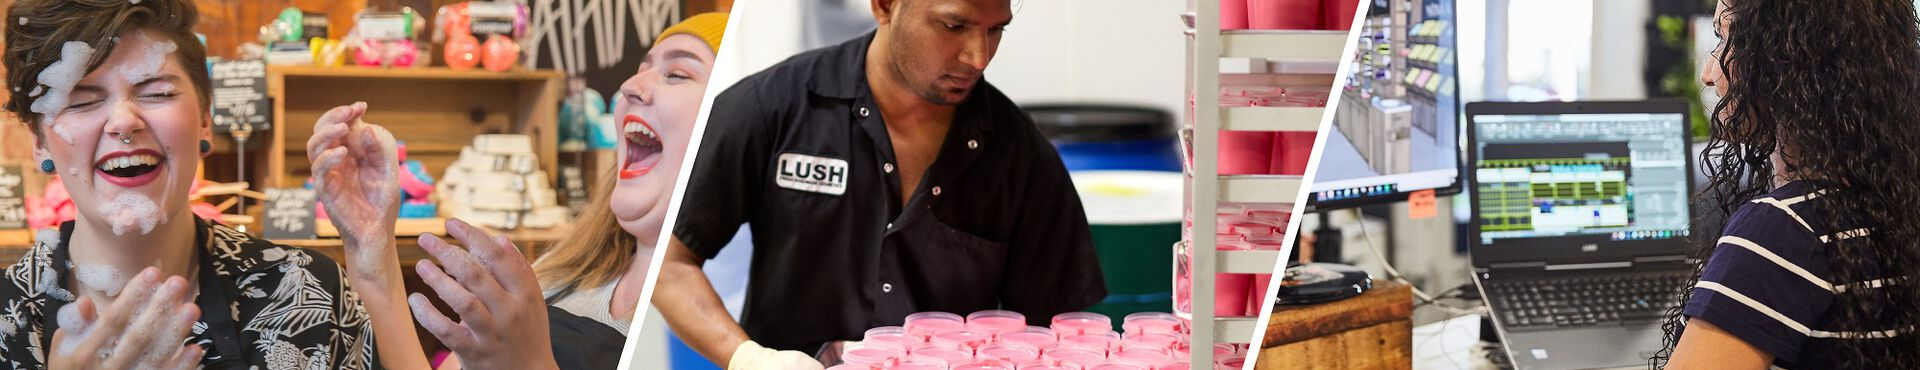 Banner - Start your career at Lush today!